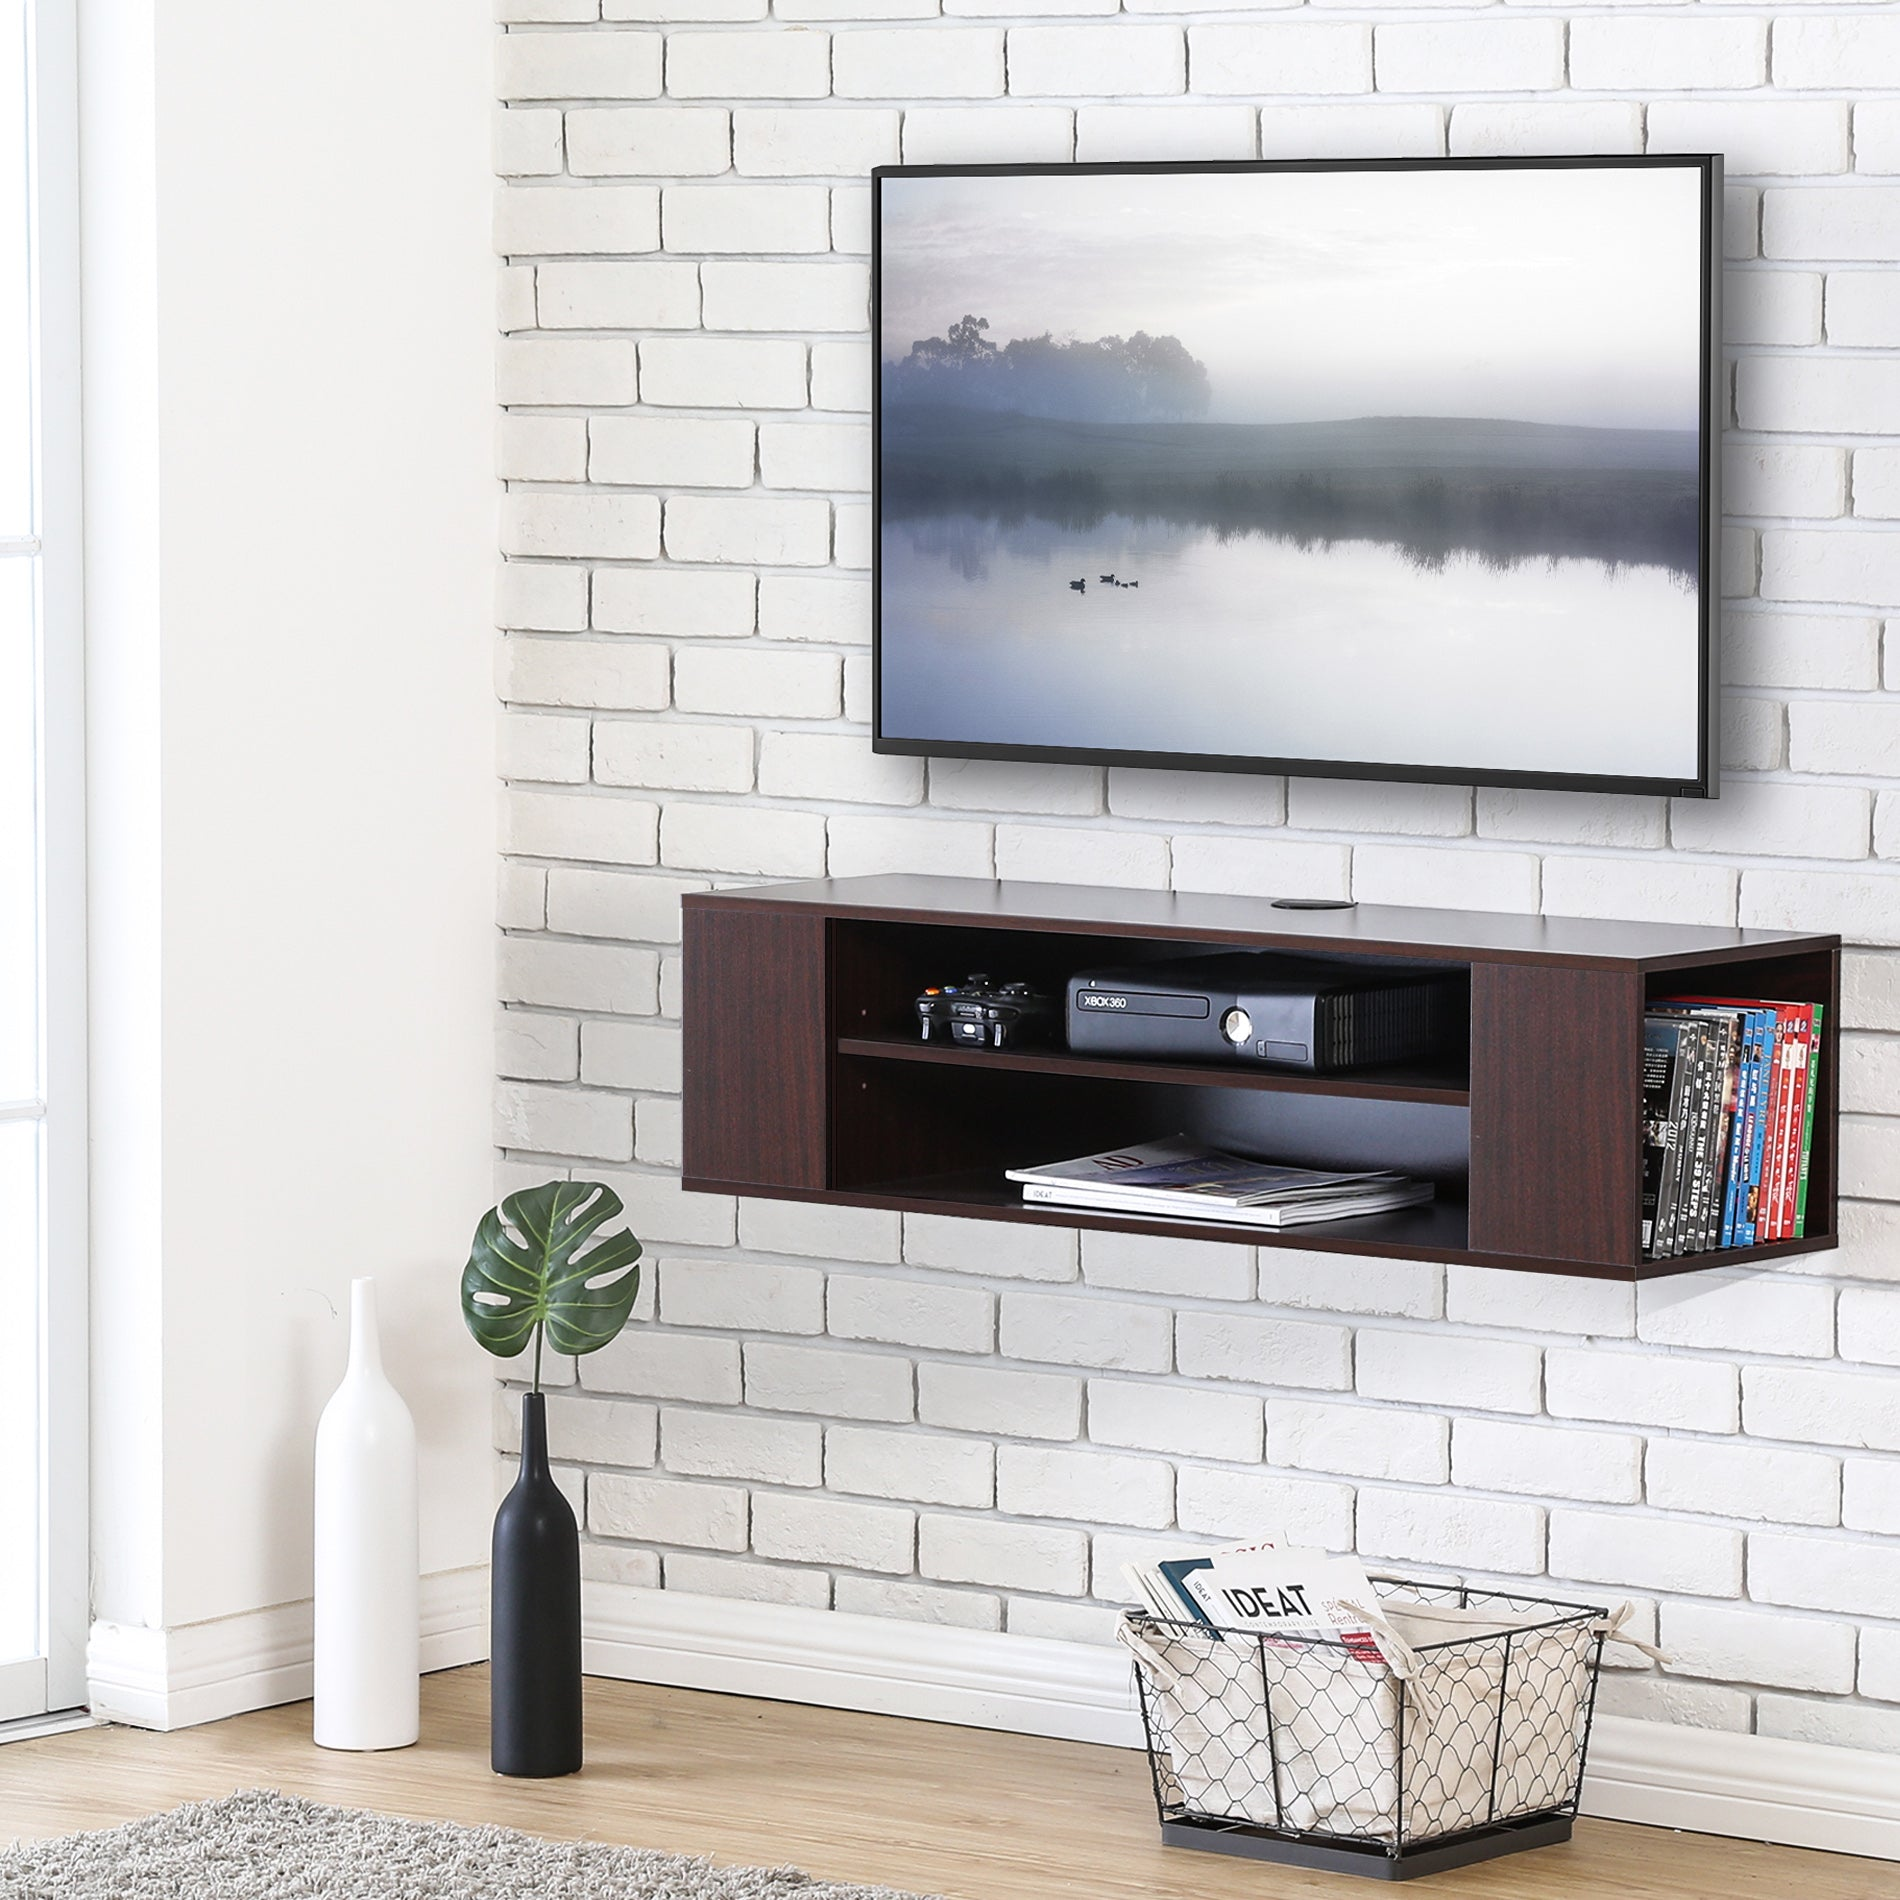 wall mount tv cabinet media console entertainment center tv stand rh fitueyes com wall mount tv cabinet with doors wall hanging tv cabinet images